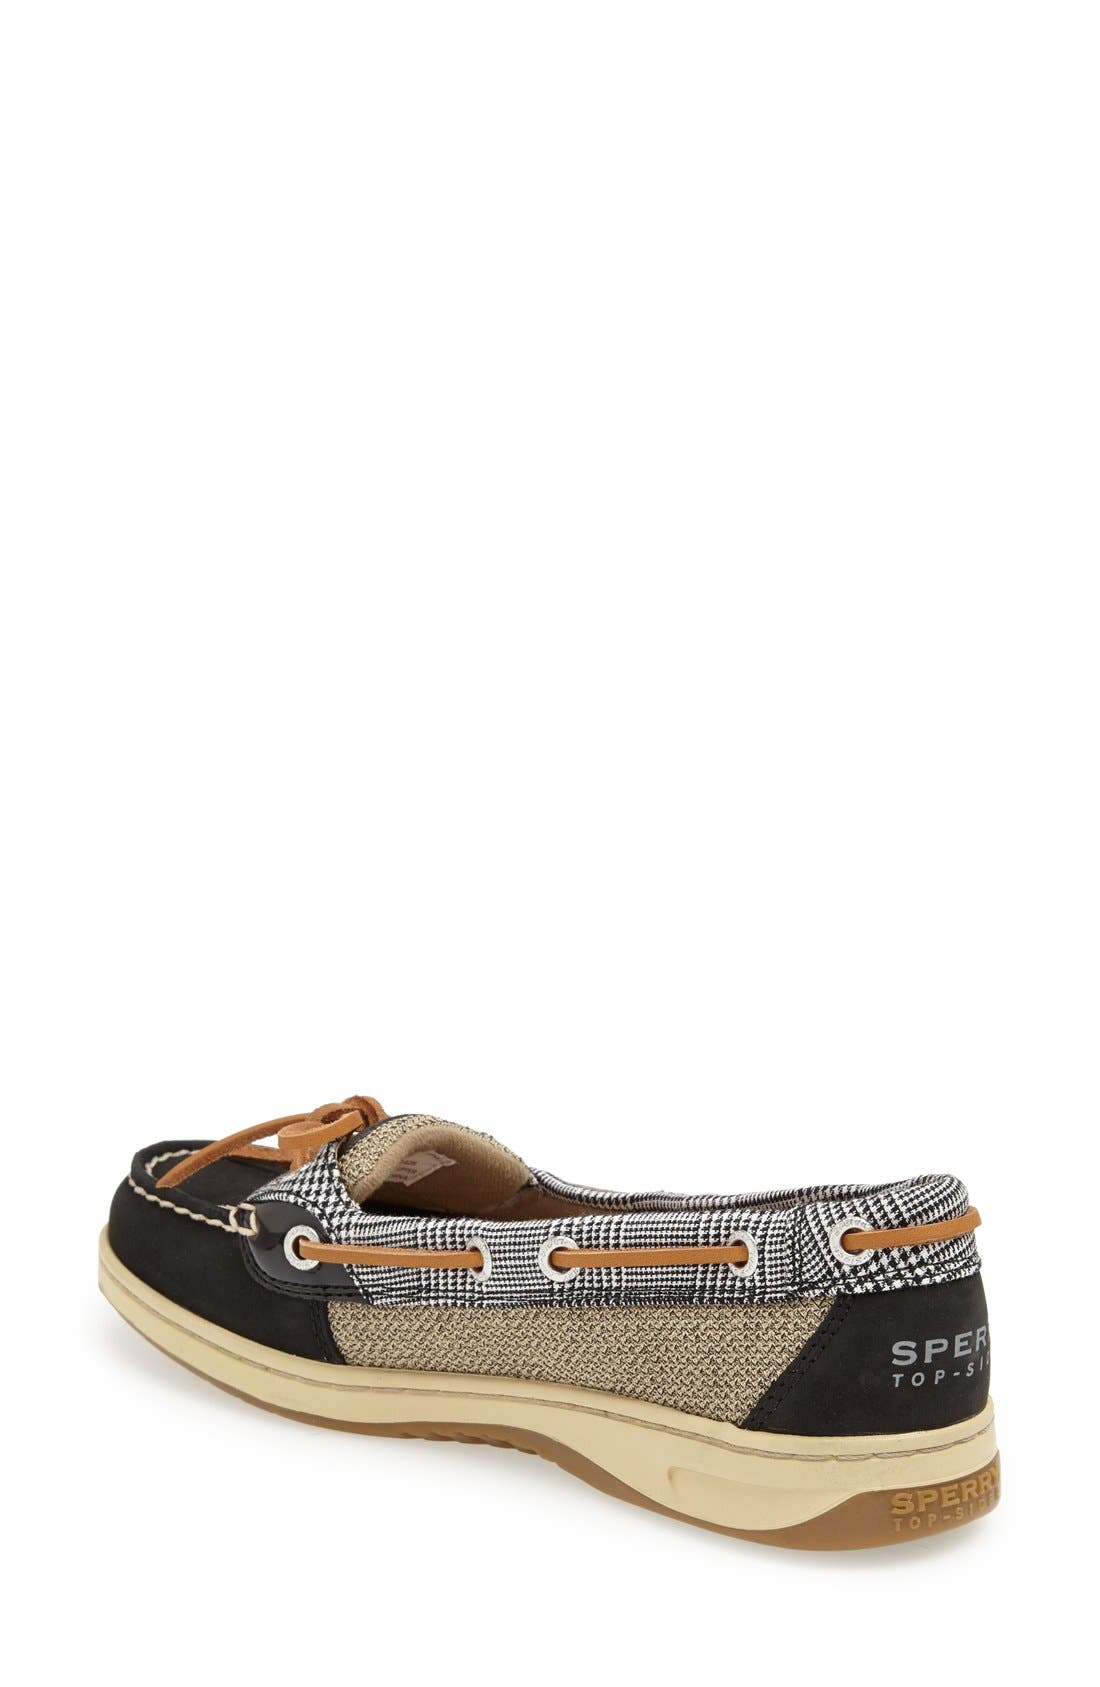 Top-Sider<sup>®</sup> 'Angelfish' Boat Shoe,                             Alternate thumbnail 2, color,                             001